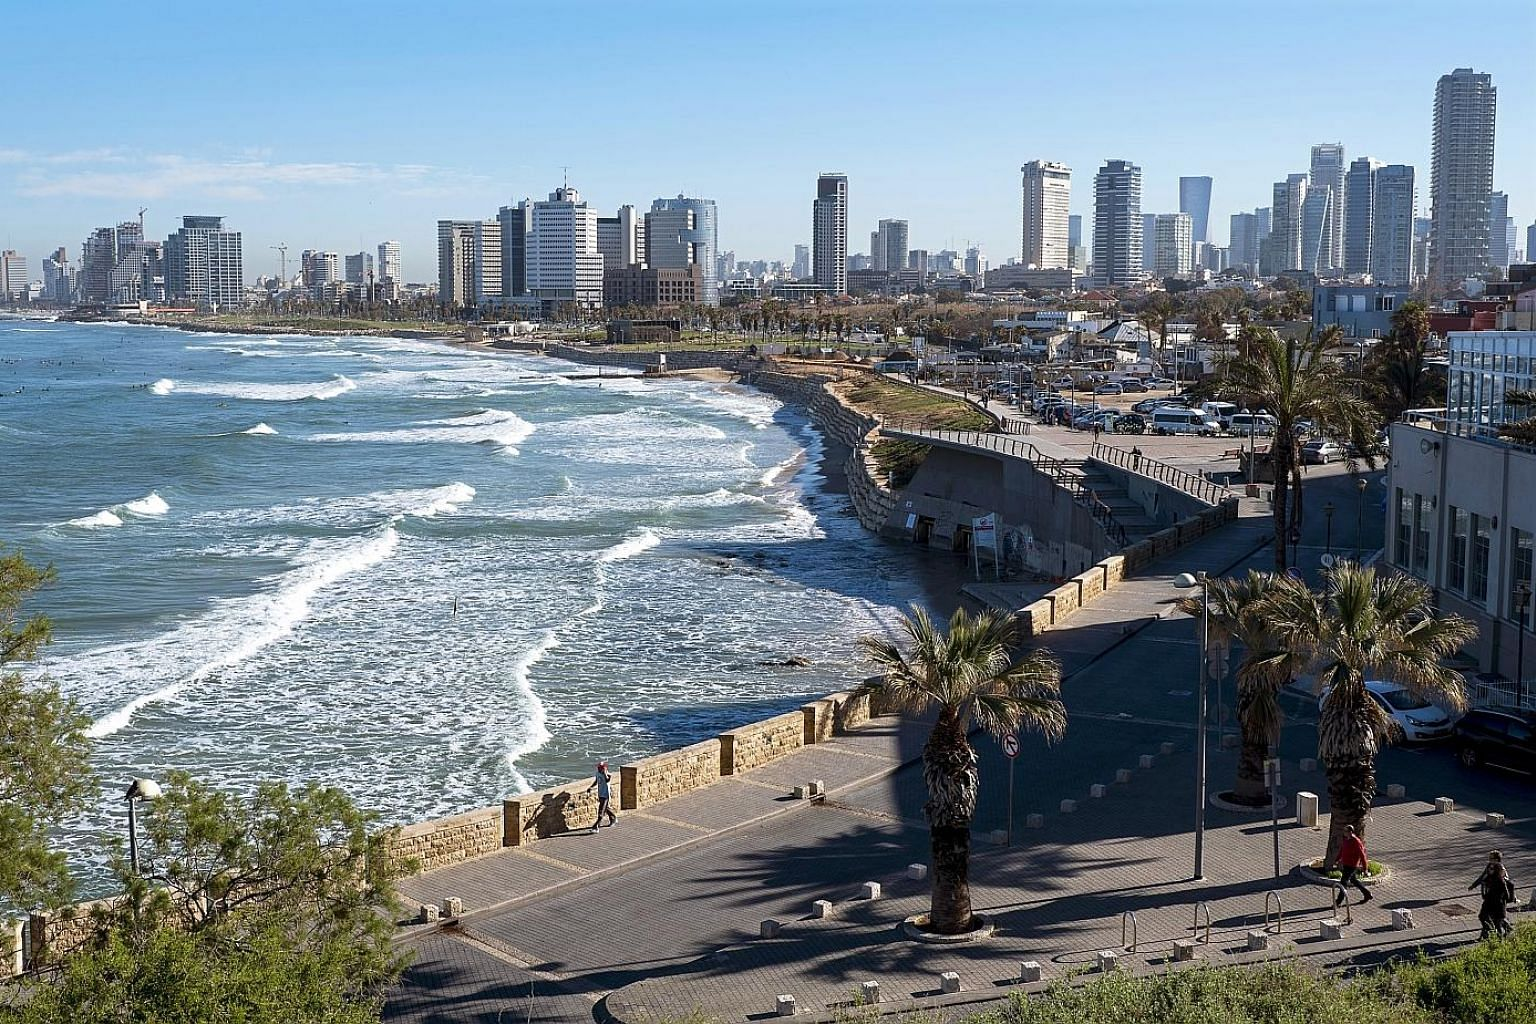 The Tel Aviv skyline. The Tel Aviv Stock Exchange said in January that it was in the process of finding a strategic investor, with shareholders putting a 71.7 per cent stake valued at around US$147 million (S$195 million) up for sale.